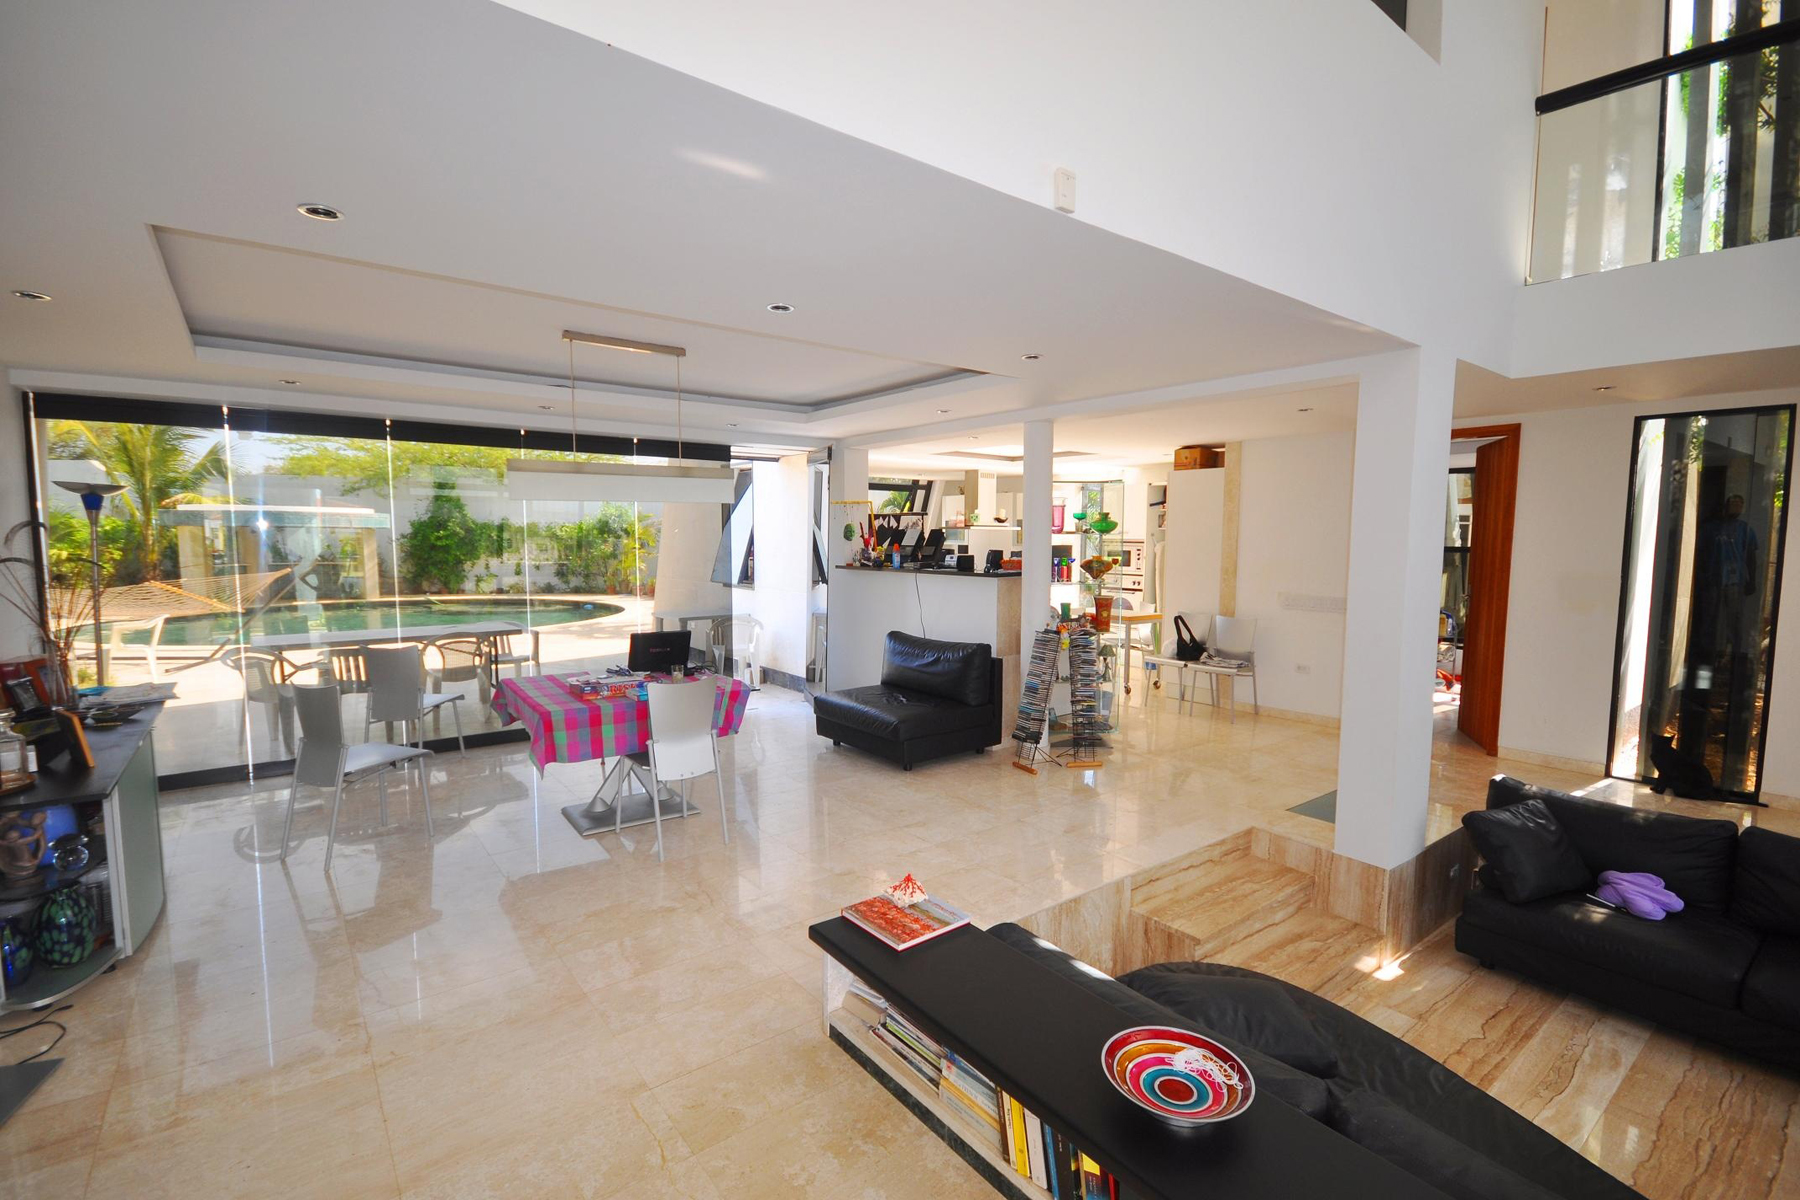 Additional photo for property listing at Modern designed Portugal Villa Other Cities In Bonaire, Cities In Bonaire Bonaire